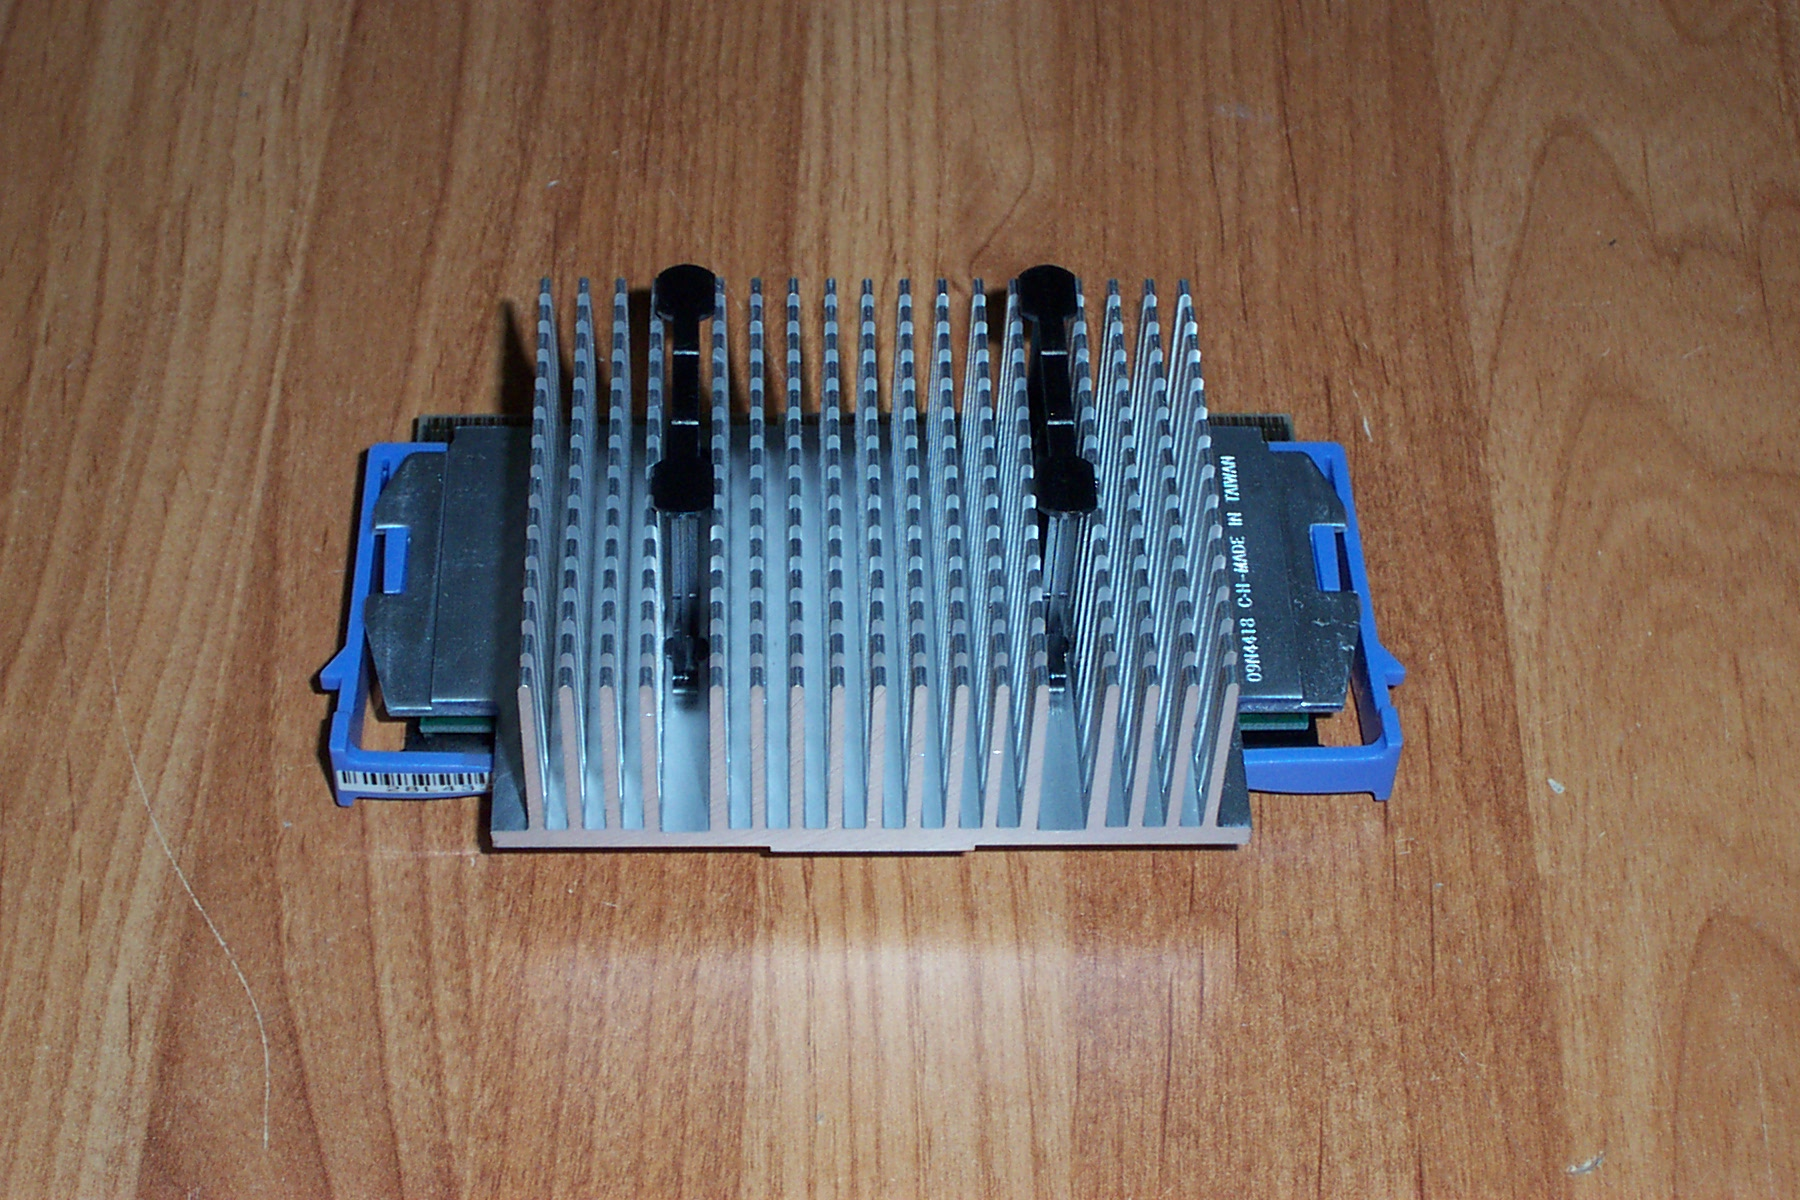 IBM 00N3622 Pentium 3 667MHz Slot 1 Processor with Heatsink